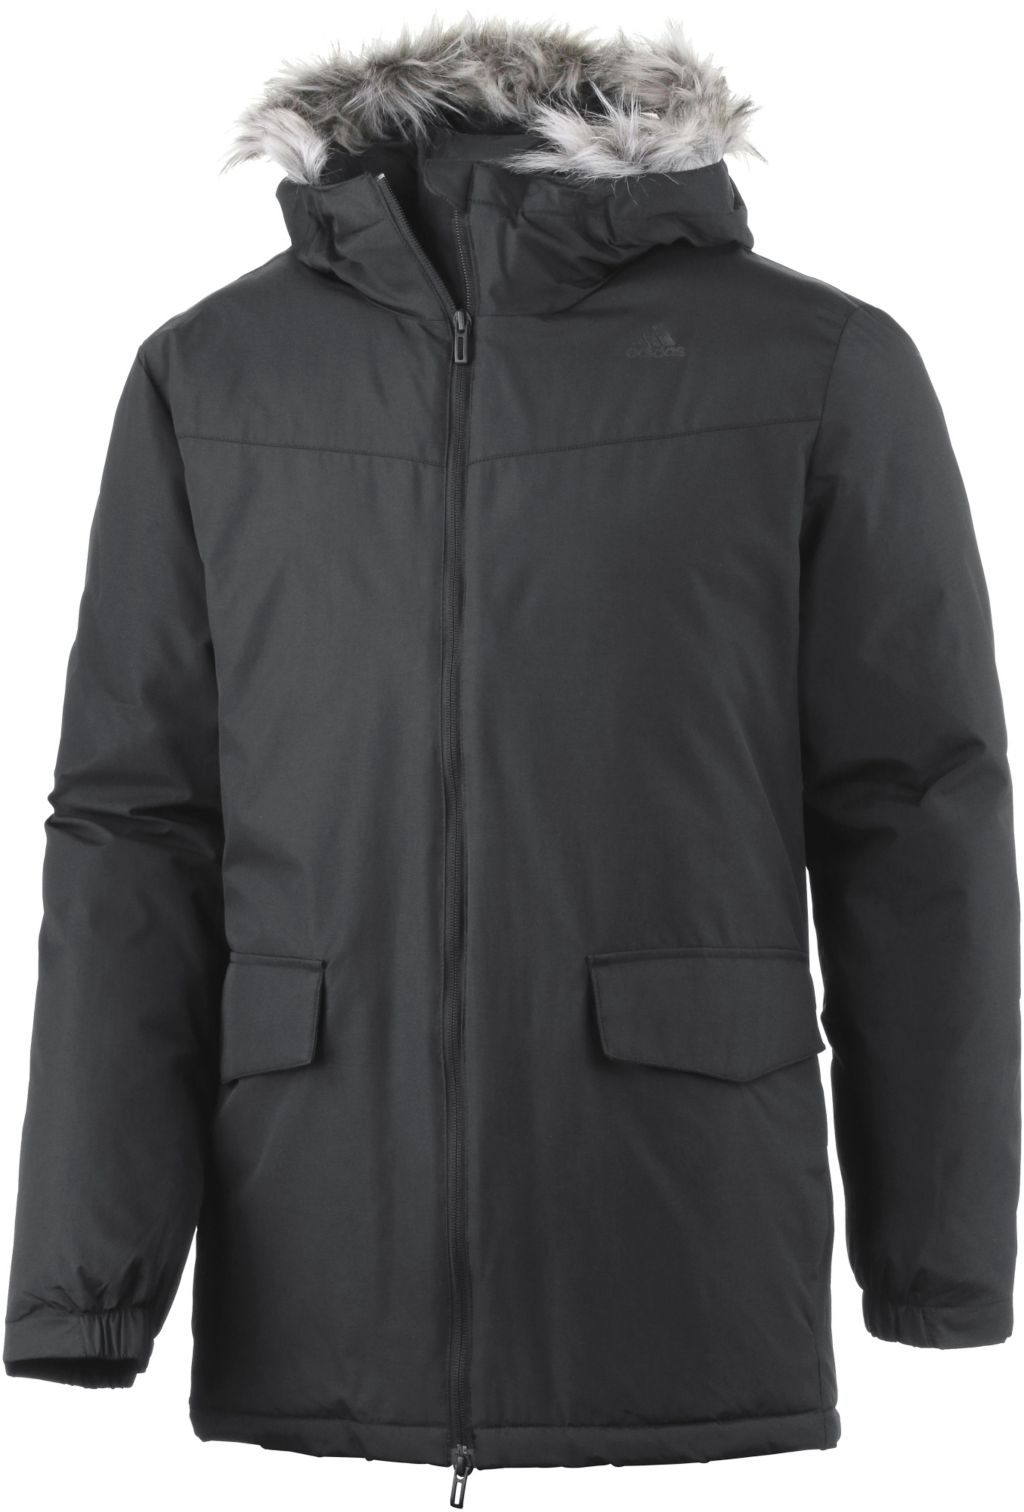 Adidas Synthetic Long Winterjacke Herren in schwarz, Größe L